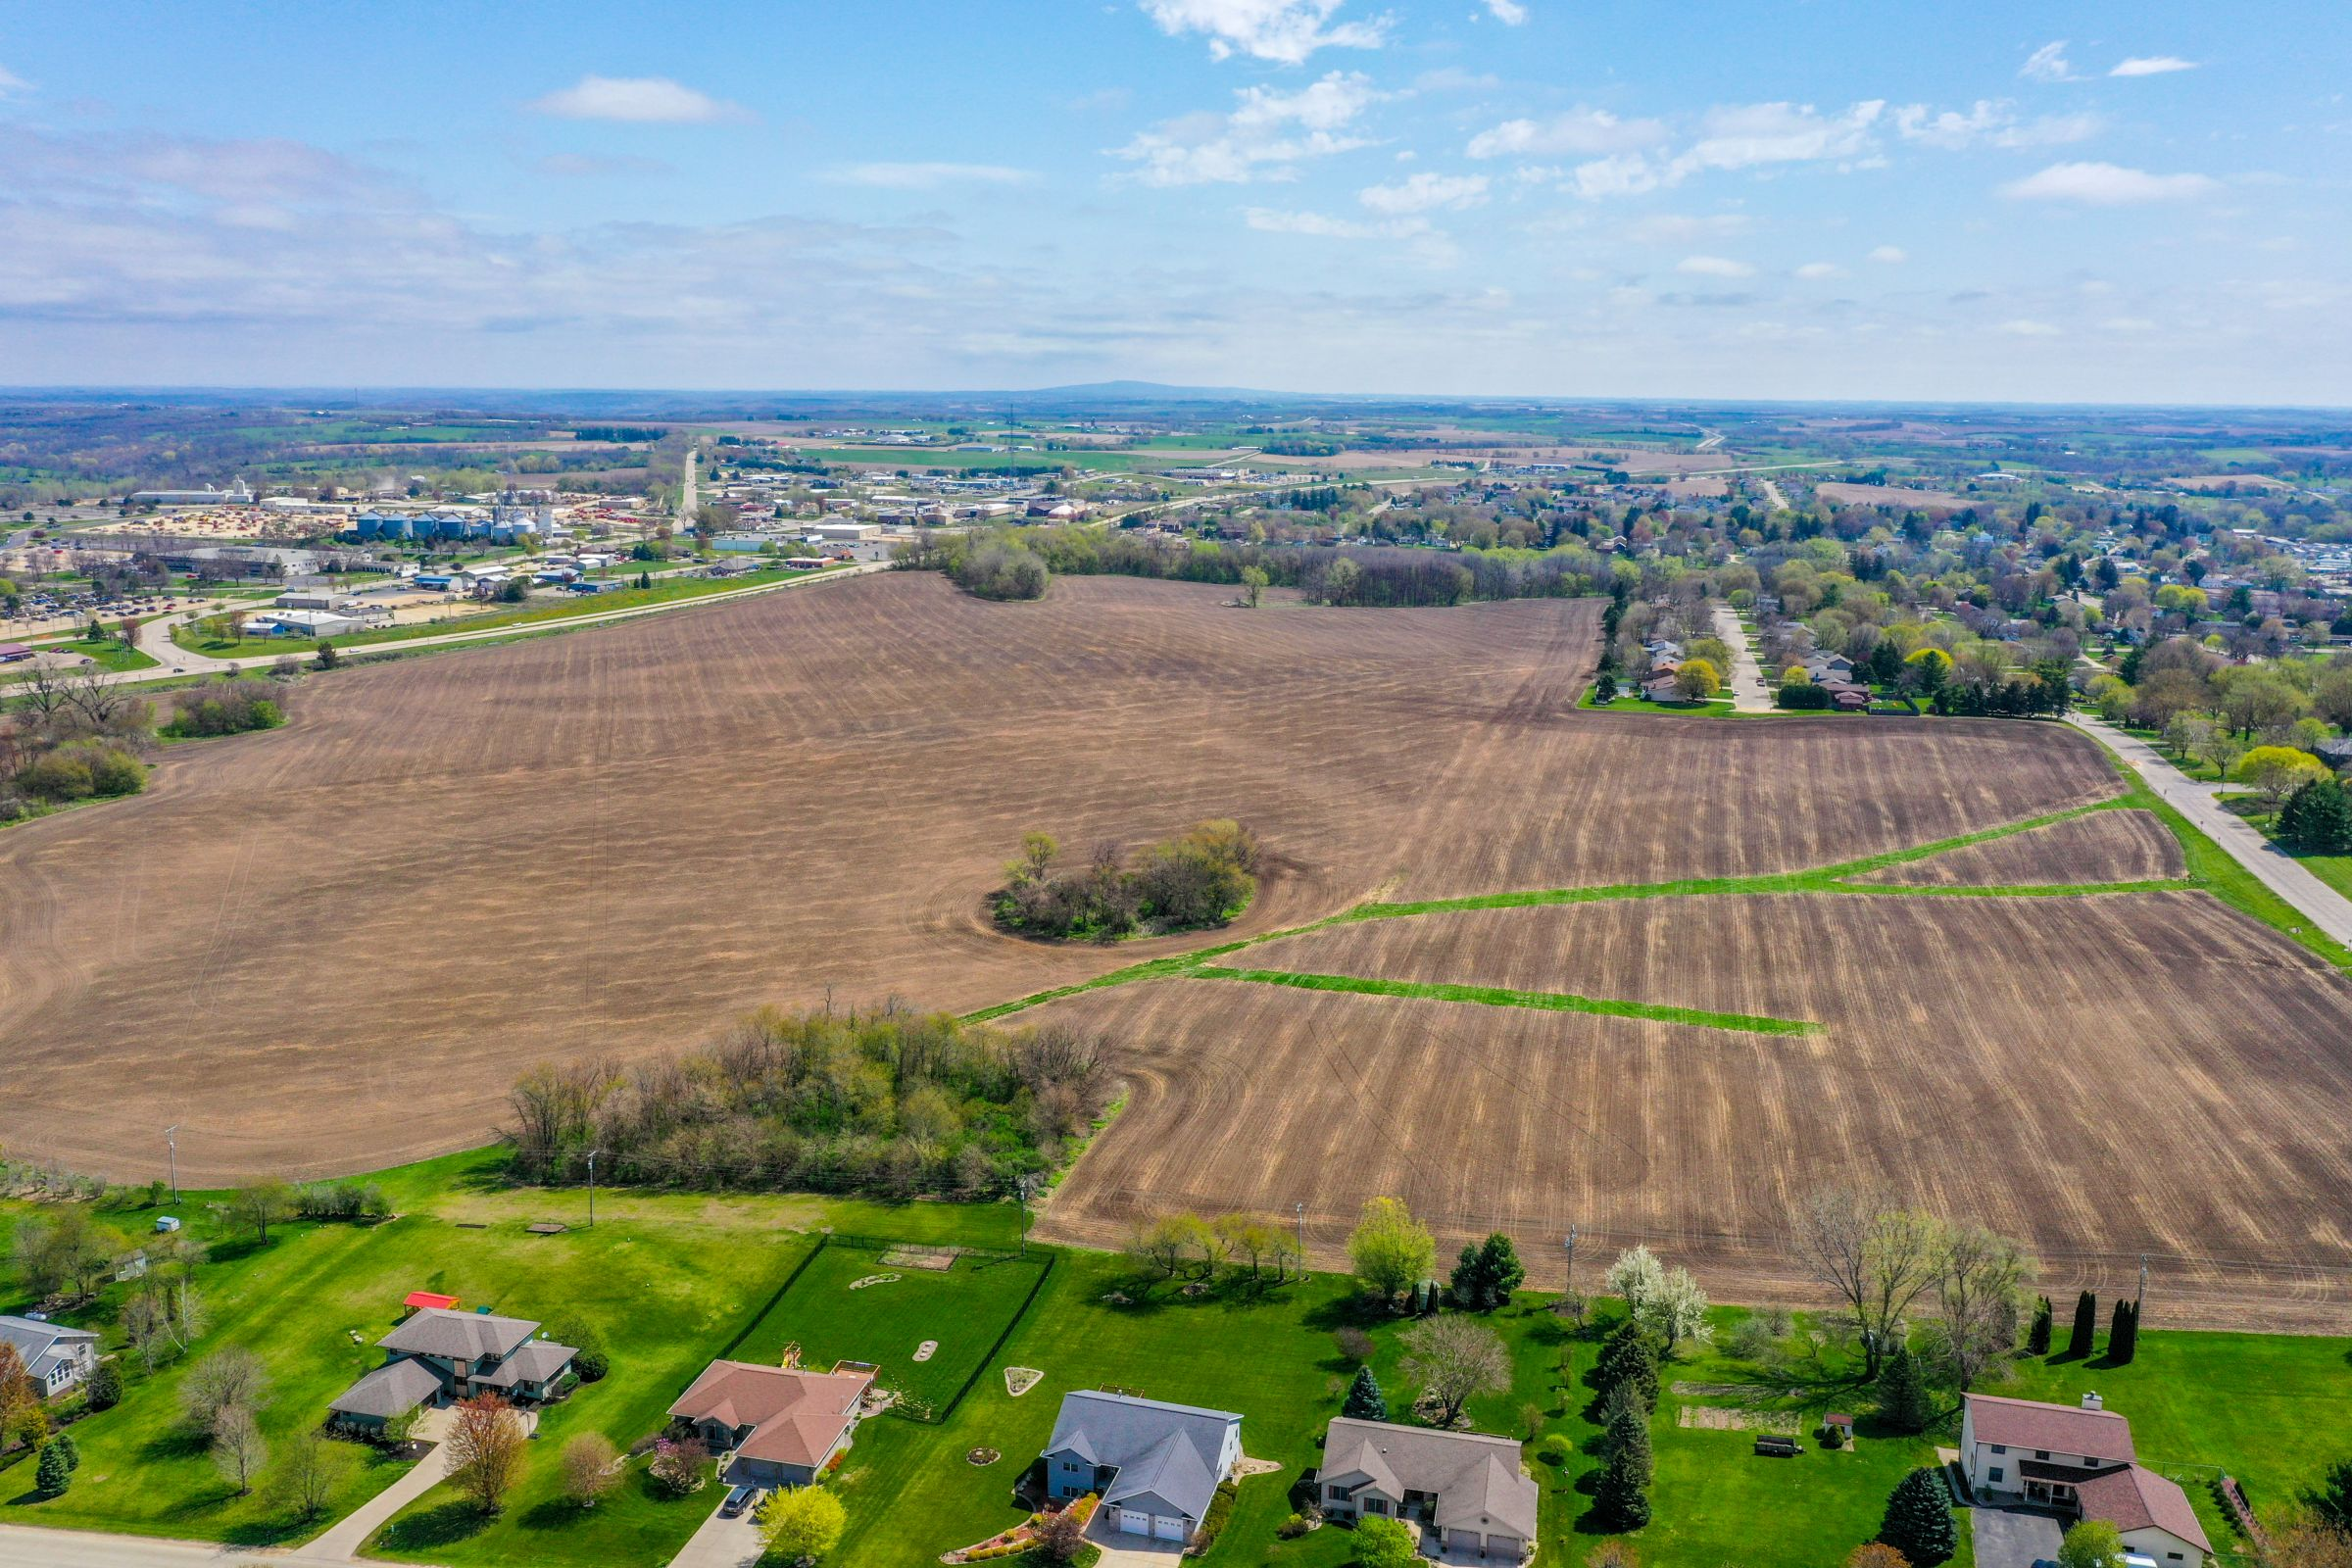 development-land-commercial-iowa-county-wisconsin-152-acres-listing-number-15474-2-2021-05-18-161416.jpg